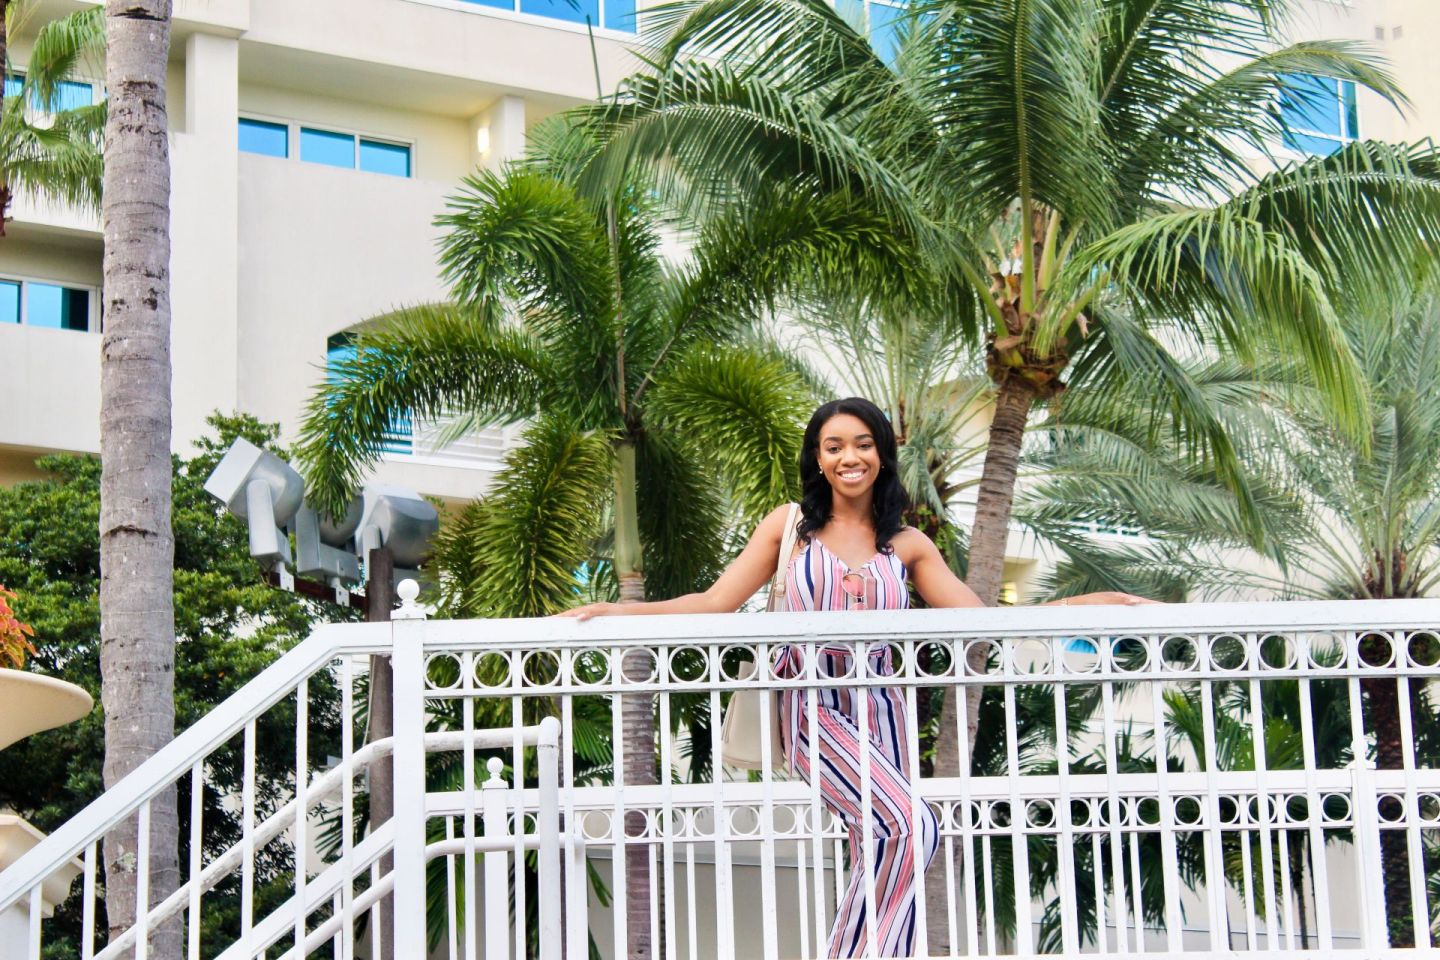 Florida Vacation Pt 1: A Day In Fort Lauderdale